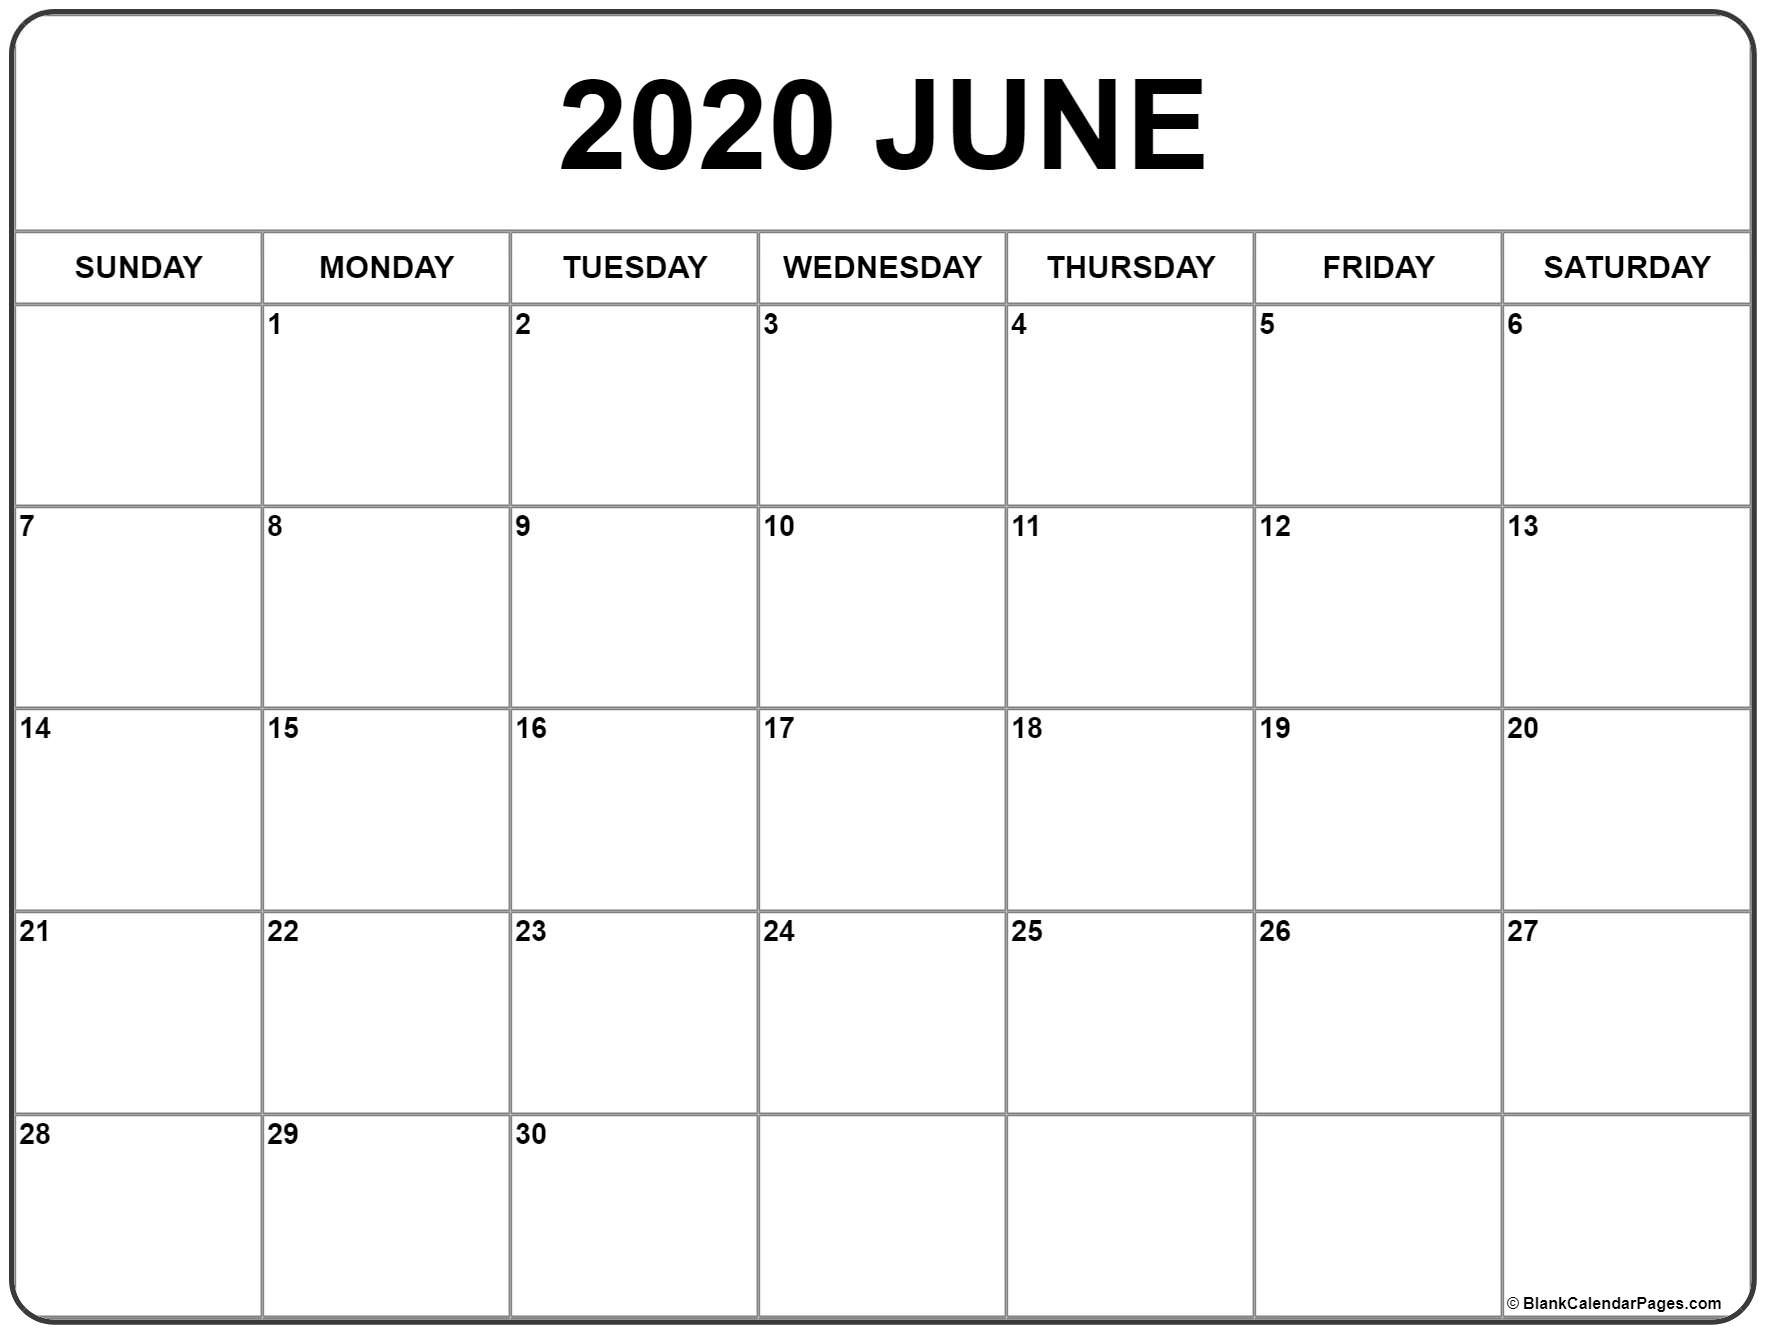 June 2020 Calendar | Free Printable Monthly Calendars  National Day Calendar June 2020